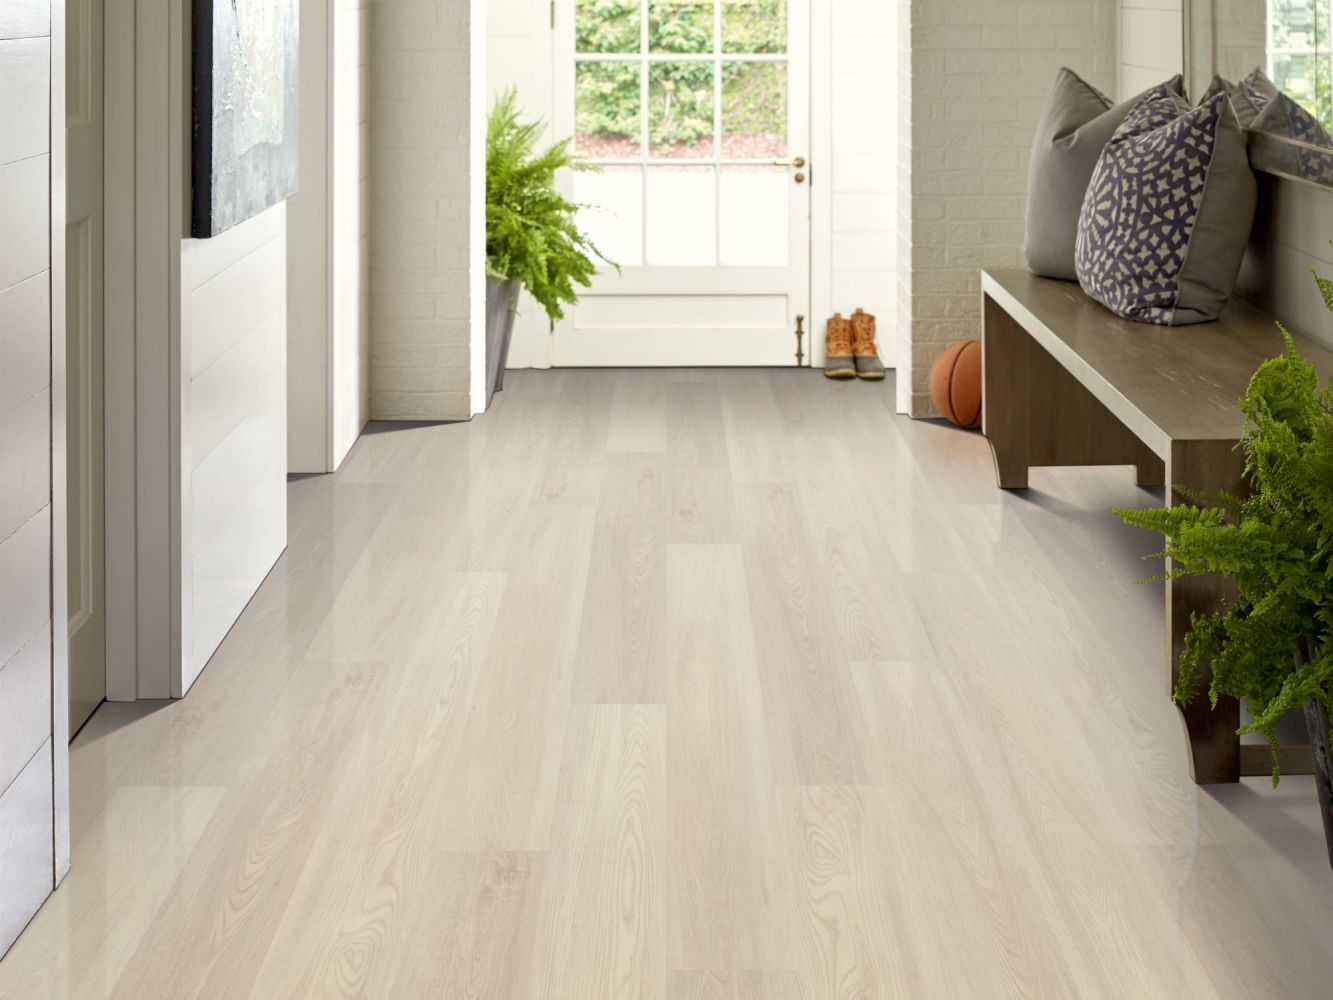 Shaw Floors Resilient Residential Endura Plus Silver Dollar 01055_0736V